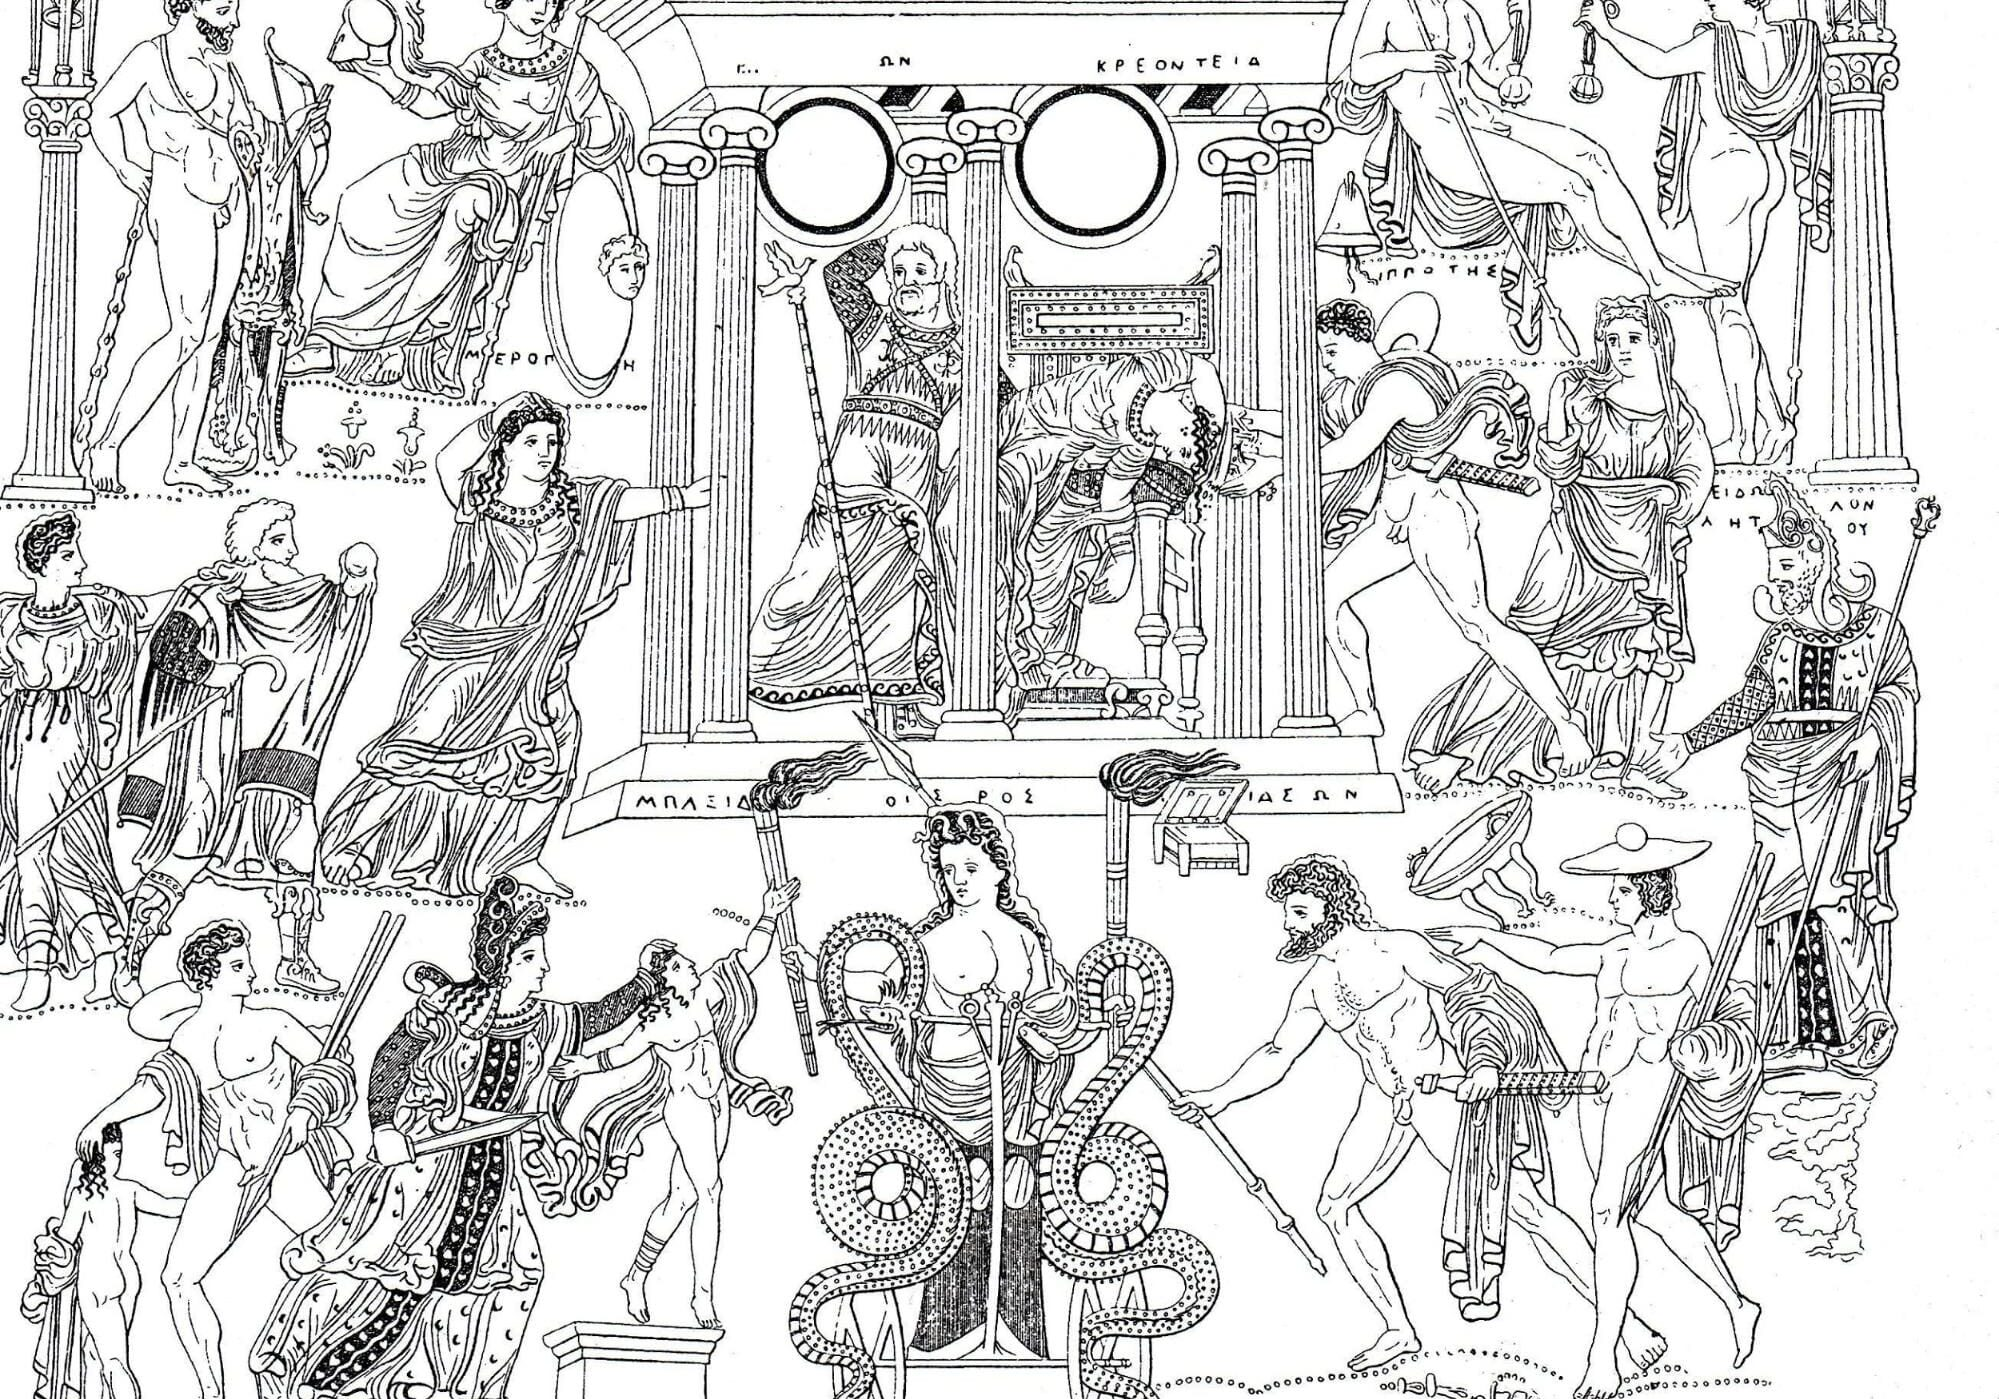 Copied from a Classic Greek vase, the image clearly shows the tragedy of Medea as it was performed, including stage properties and rich costume detail.